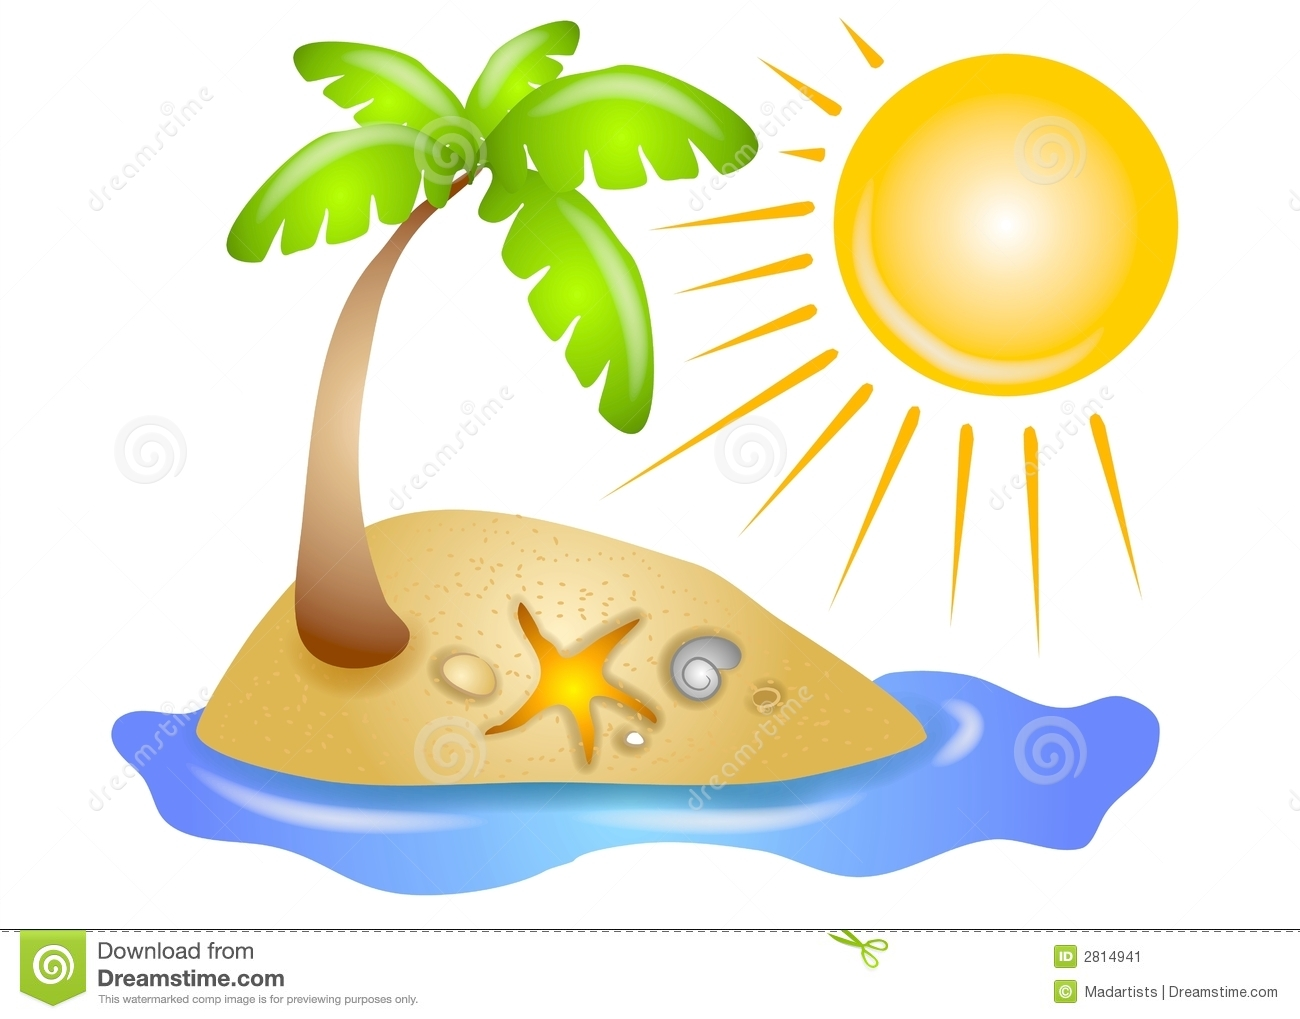 deserted island beach sun stock illustration illustration of beach rh dreamstime com free clip art beach party free clip art beach scene